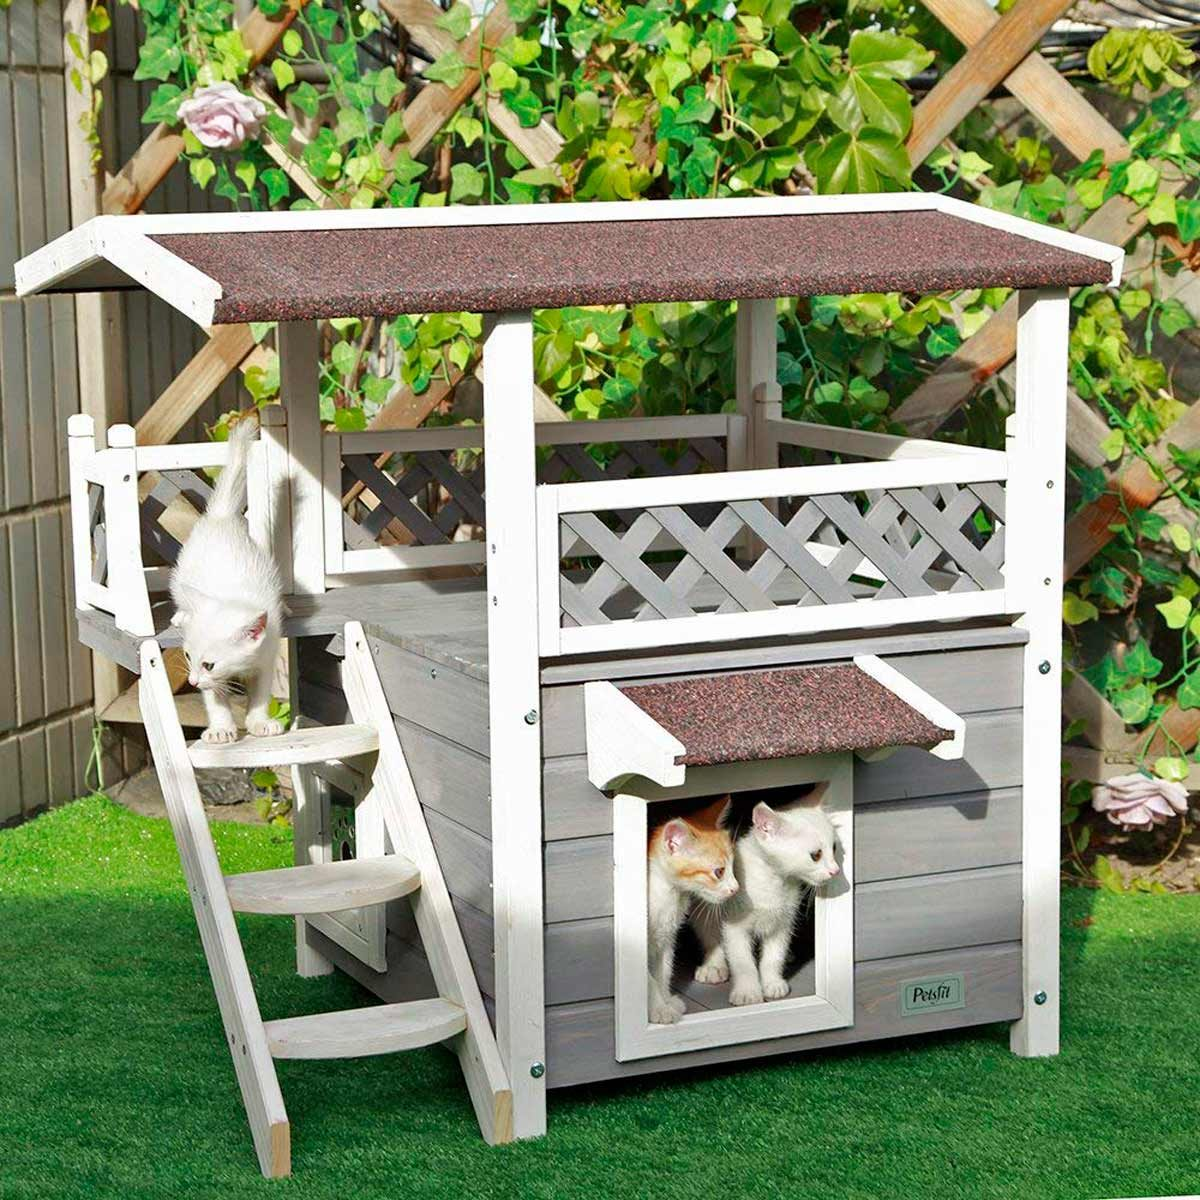 10 Cat Houses For Your Outdoor Cat Family Handyman